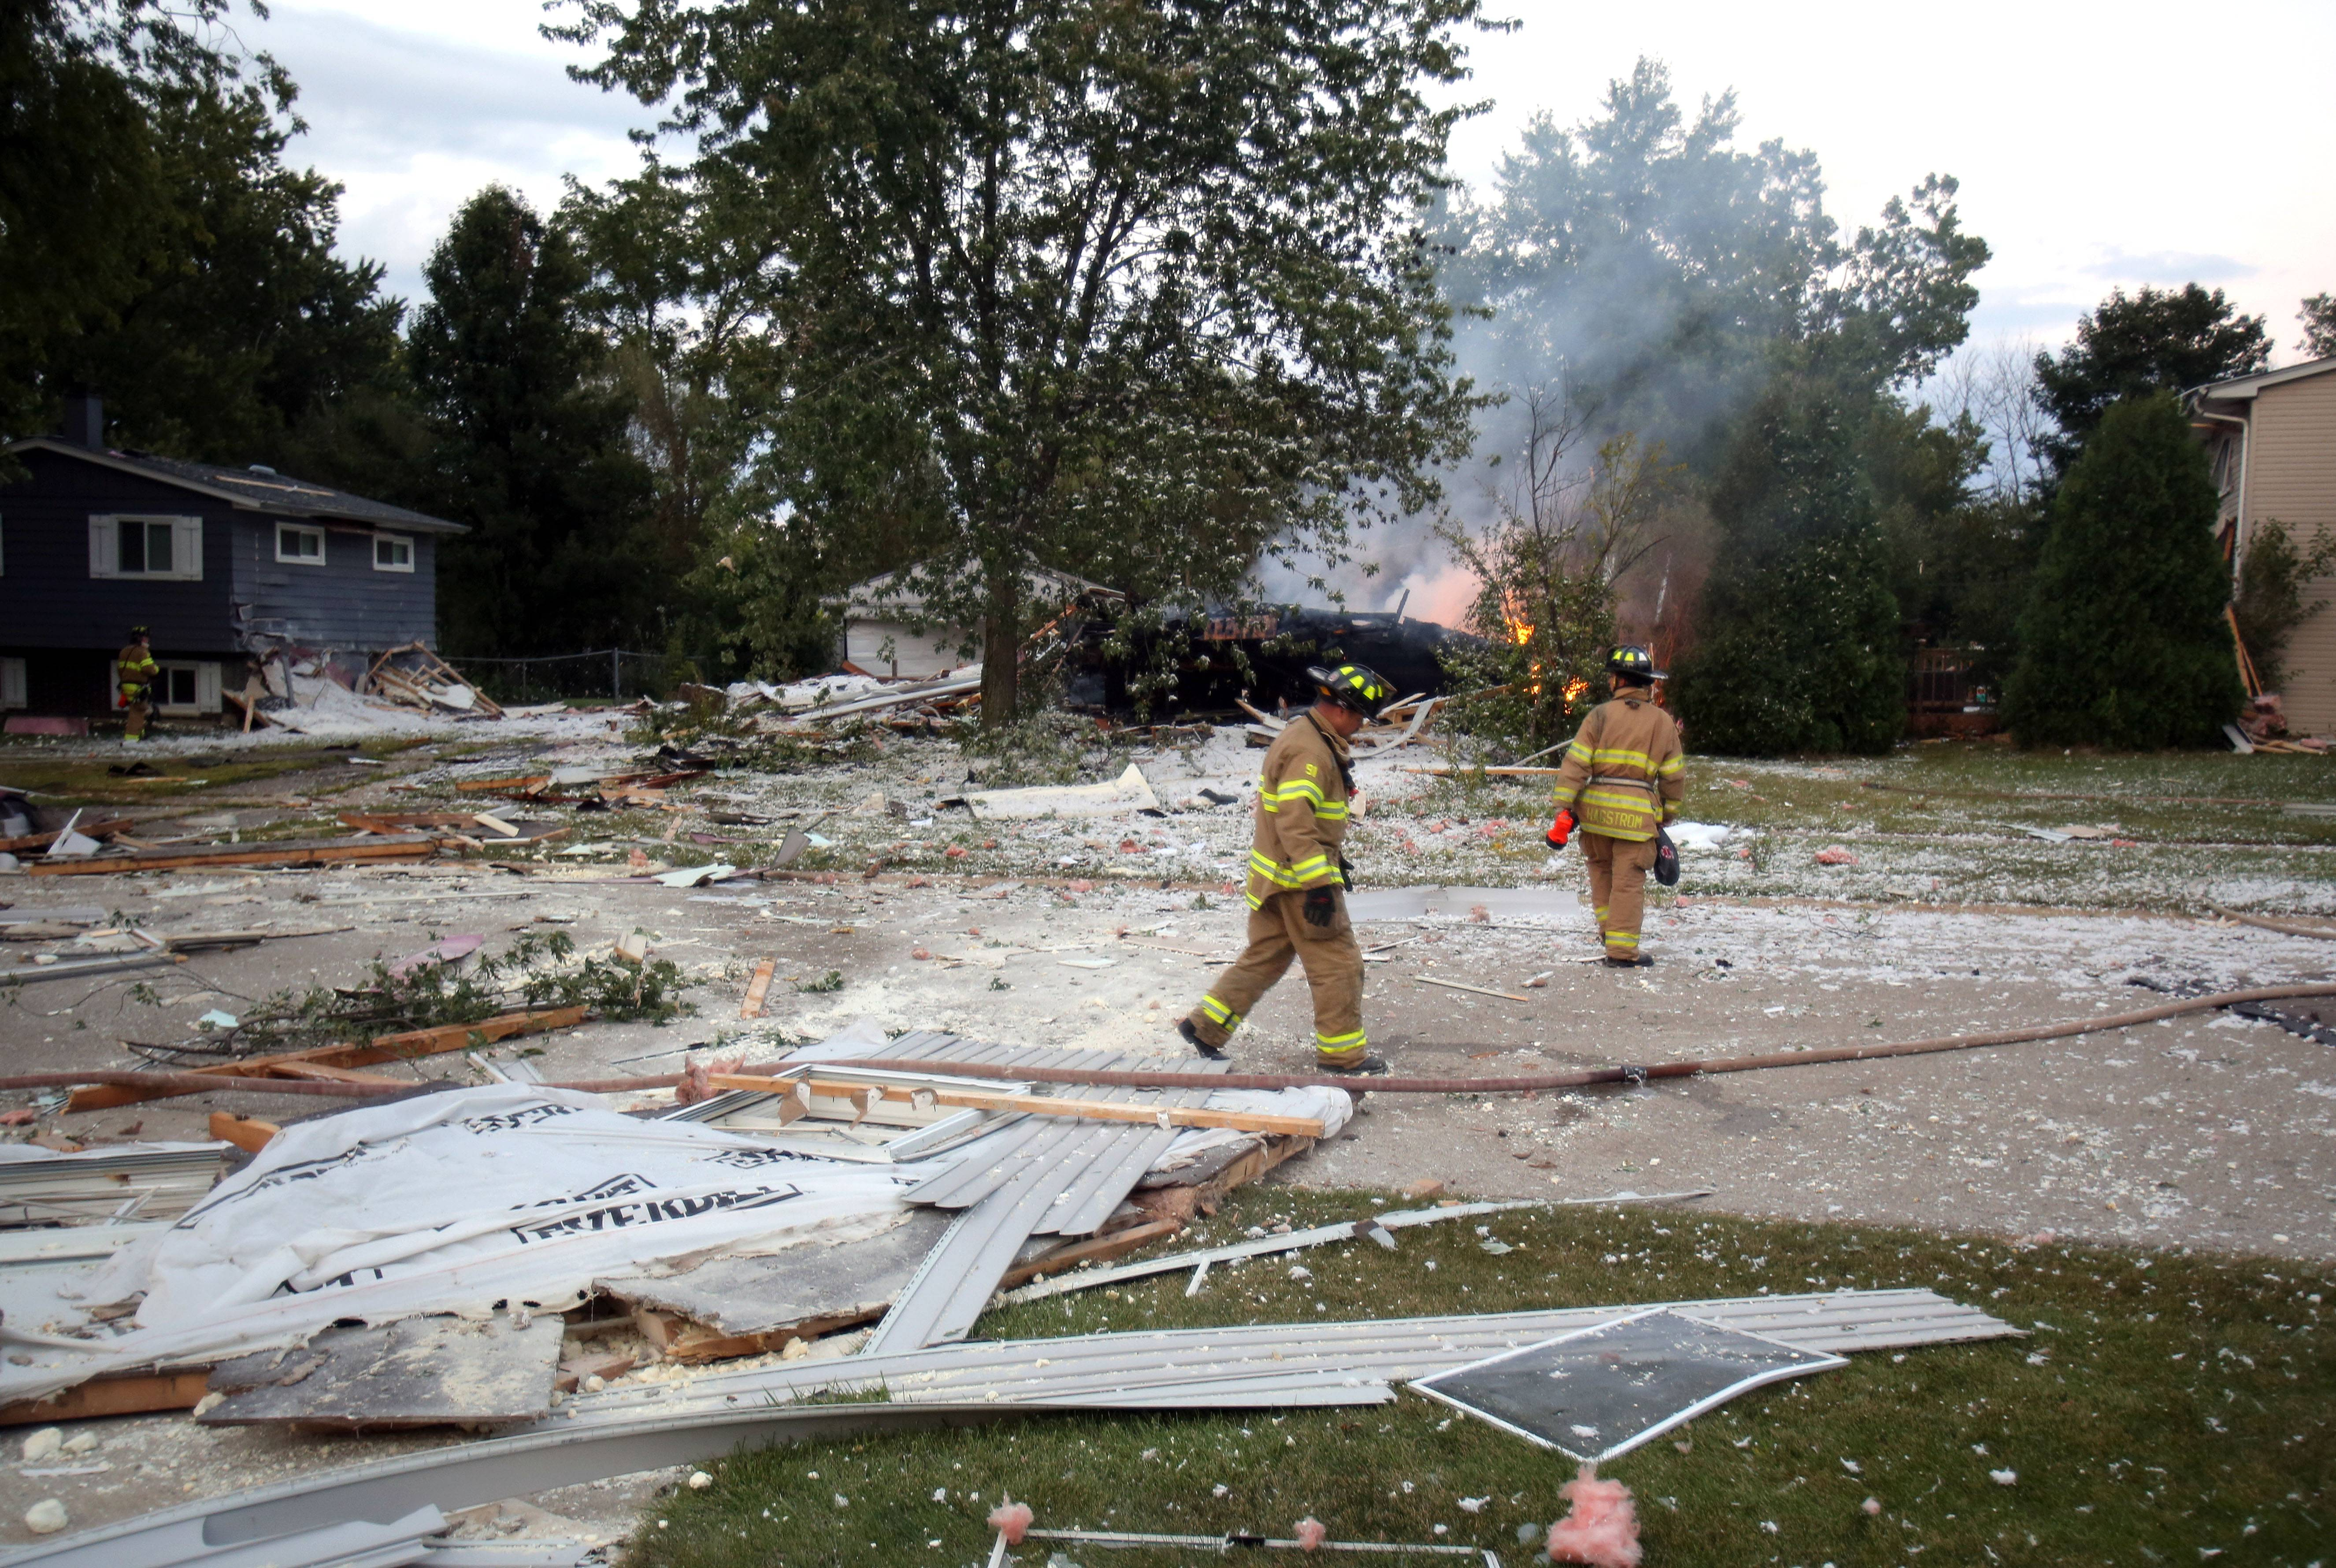 DNA testing that could take months is needed to positively identify a man found dead in the rubble of a Gurnee-area home that exploded Friday, Lake County Coroner Howard Cooper says.